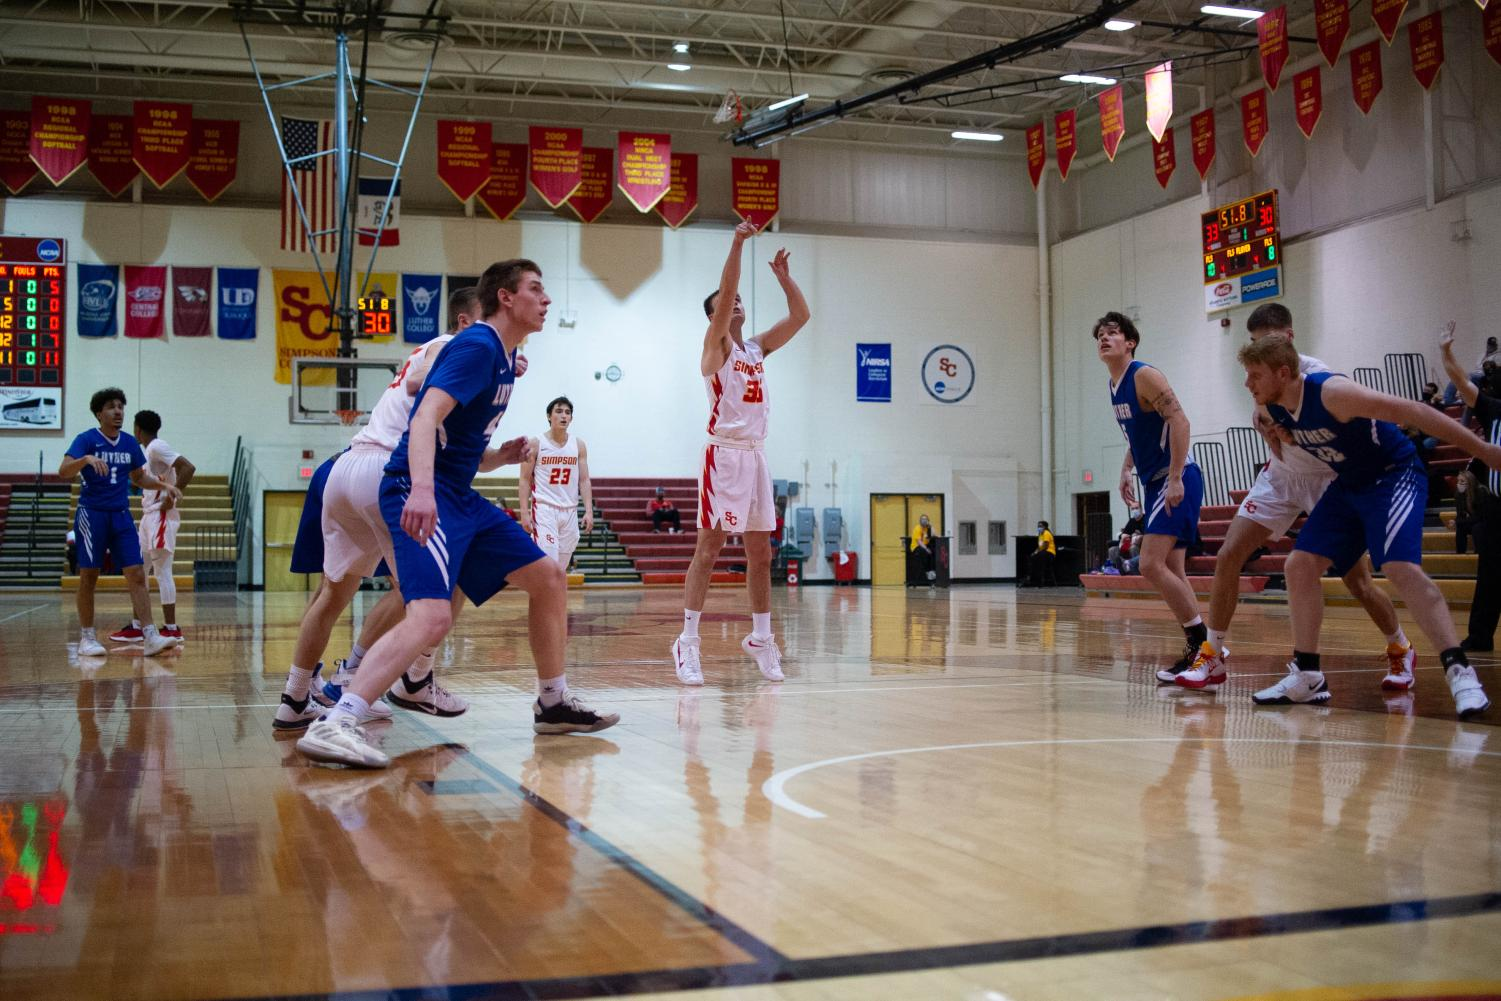 The men's basketball team hopes to improve on its 3-7 record from last season.